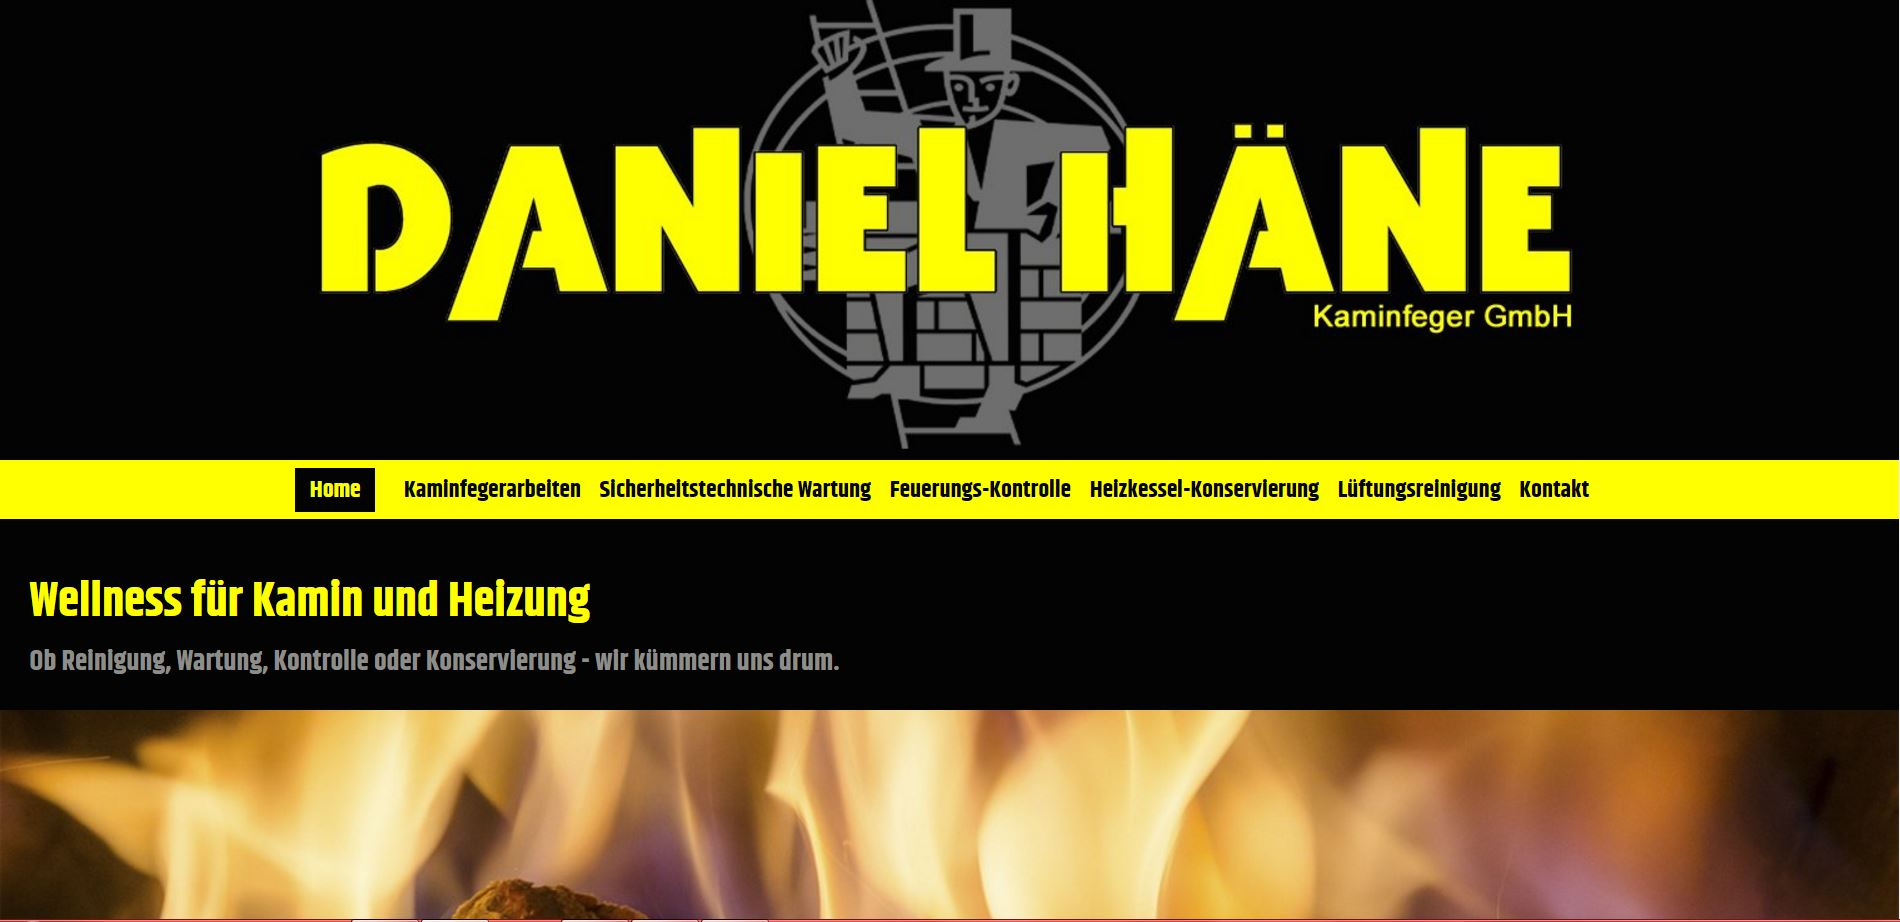 Screenshot der Website www.kaminfeger-haene.ch - Ansicht Desktop